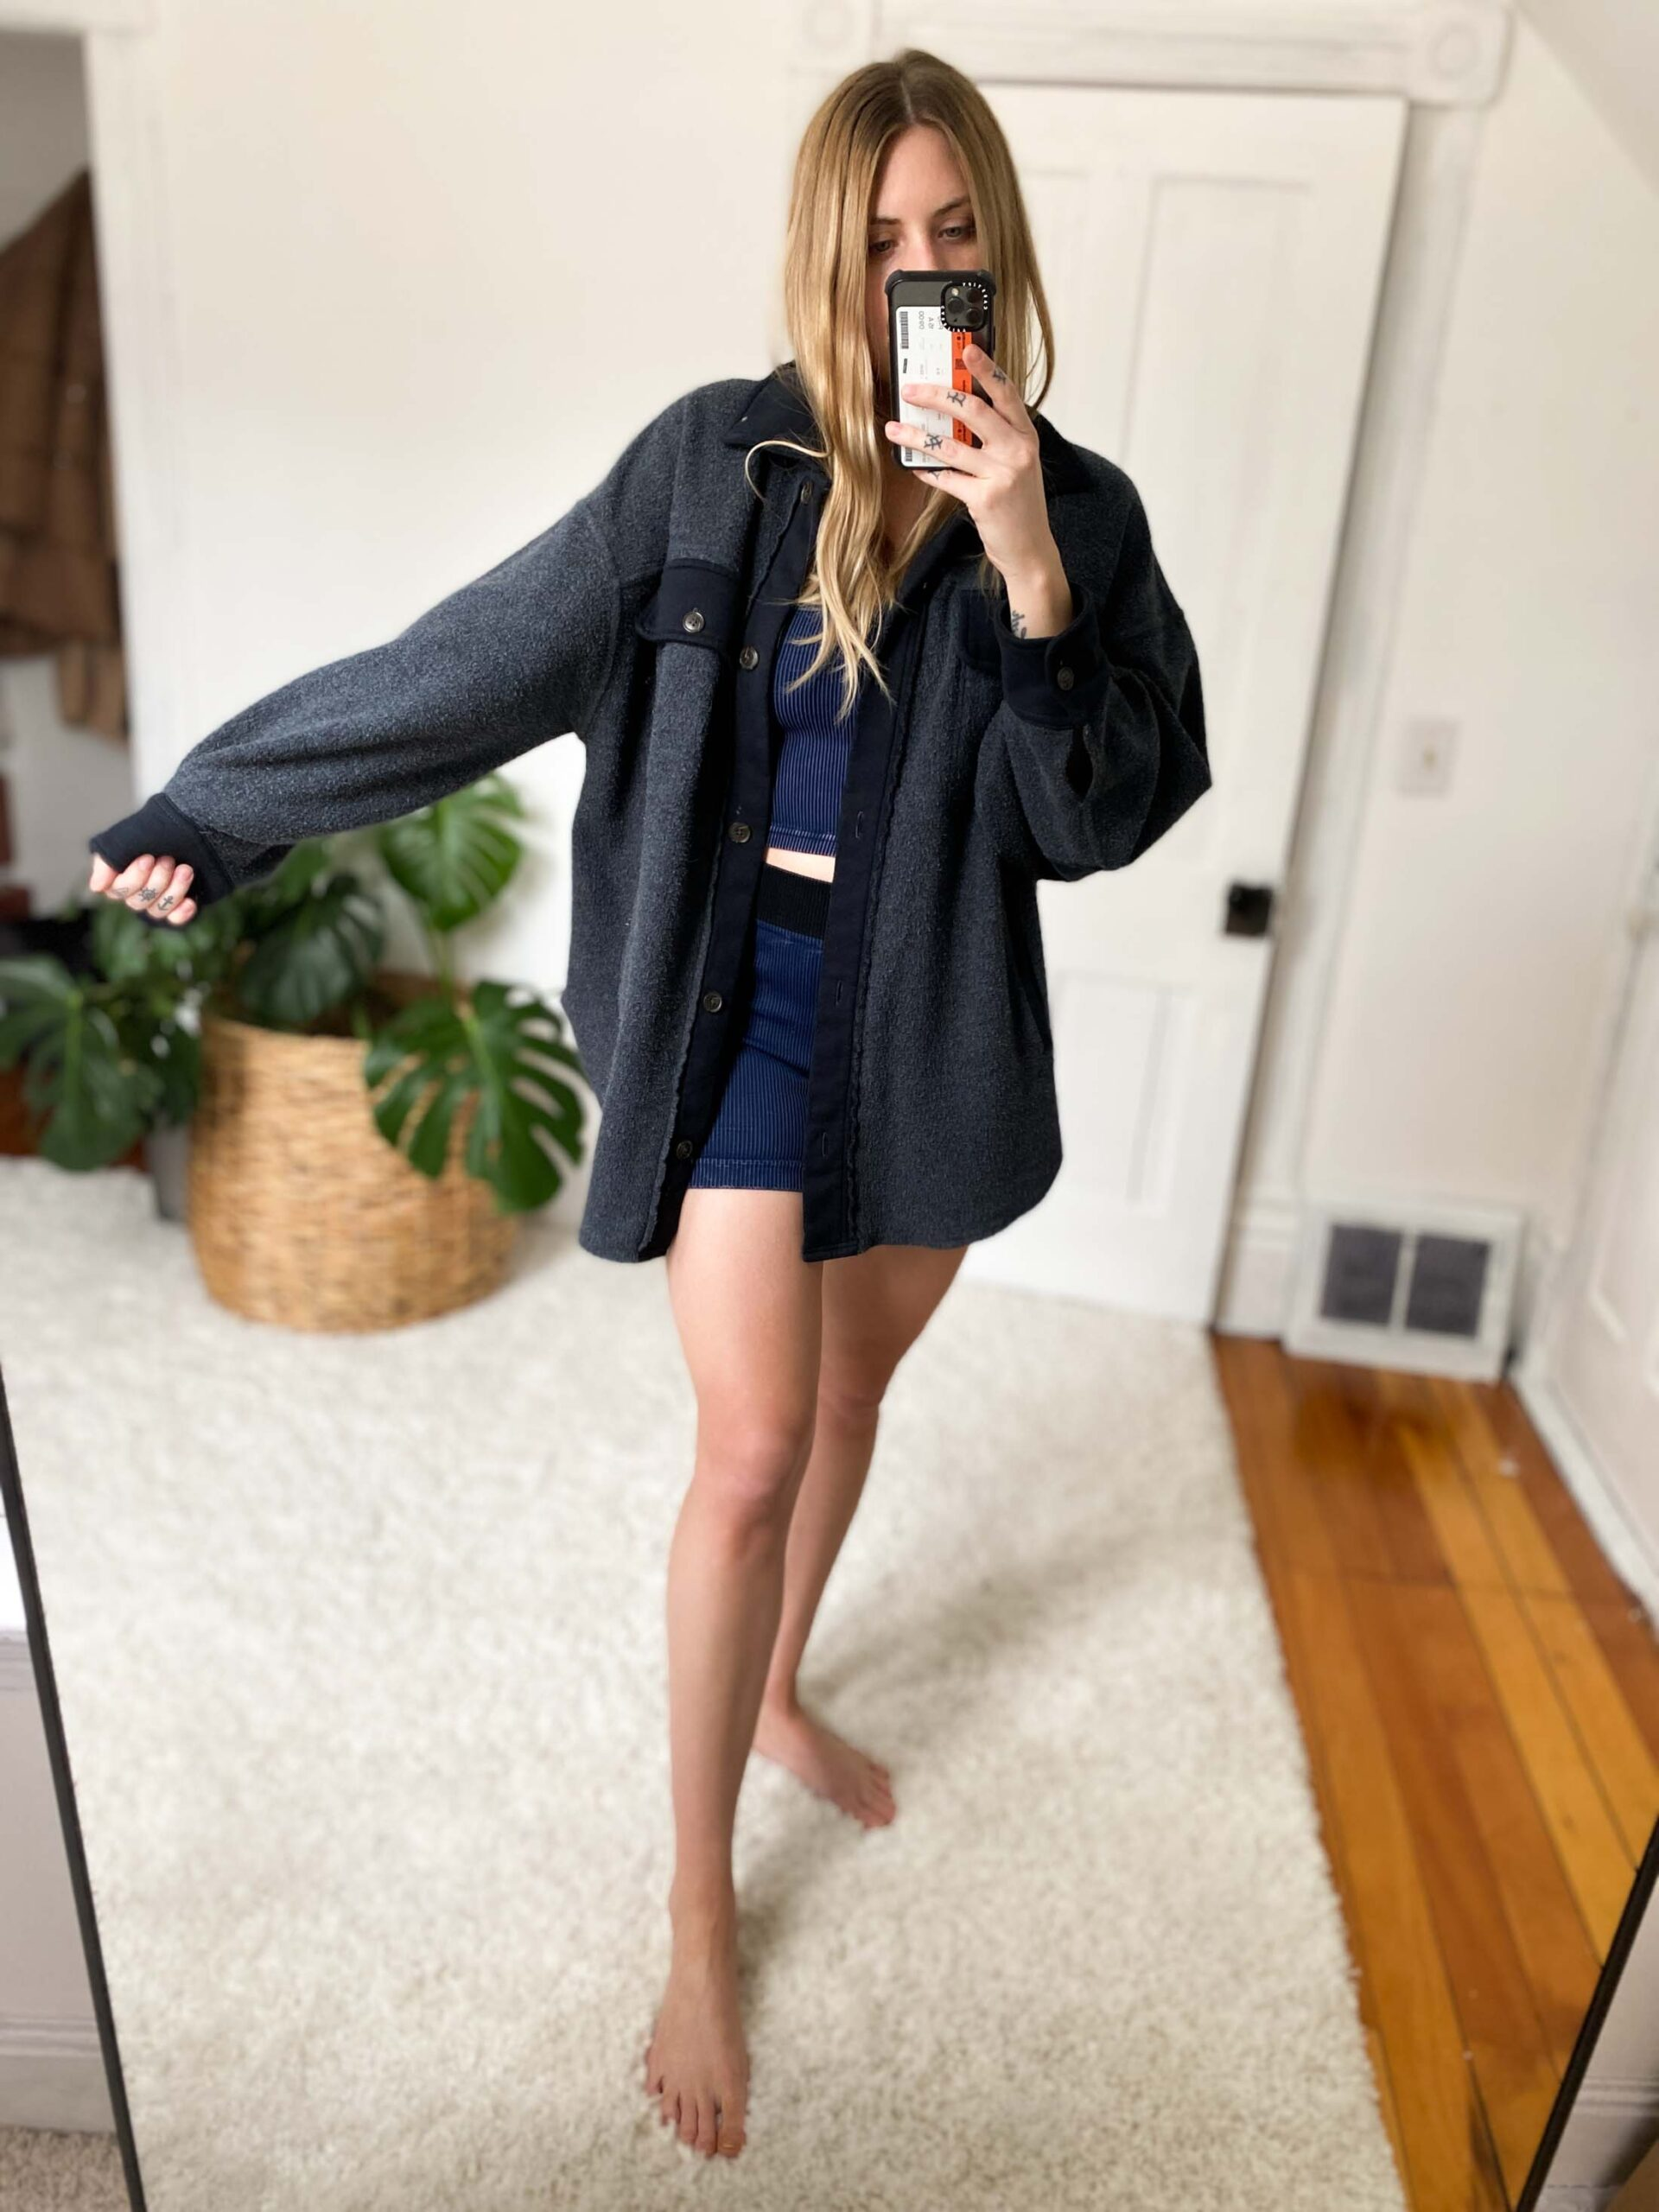 The Ruby Jacket is oversized & perfect for layering. Paired w/ long sleeves, hooded sweatshirts, or a crop tank bra underneath, it's cooozzy, but not in a dead-of-winter sort of way.